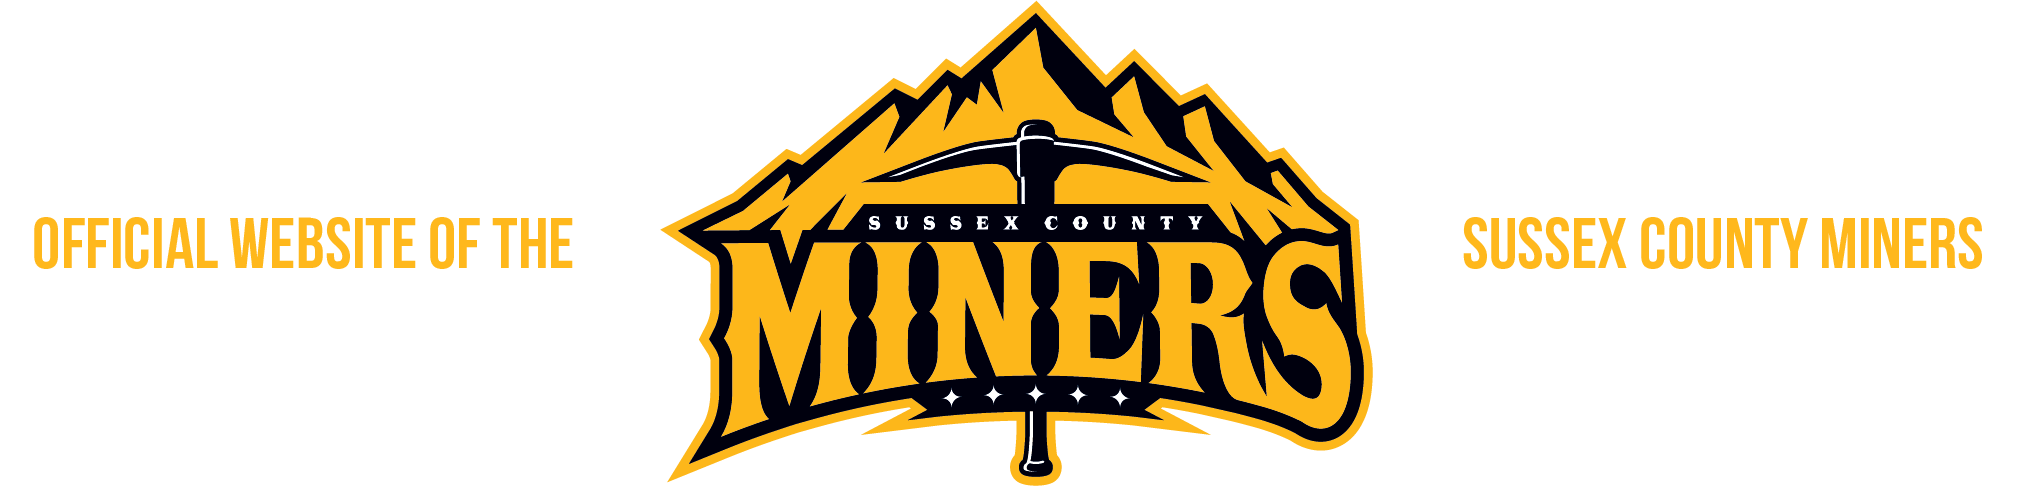 Mining clipart ice pick. Sussex county miners the